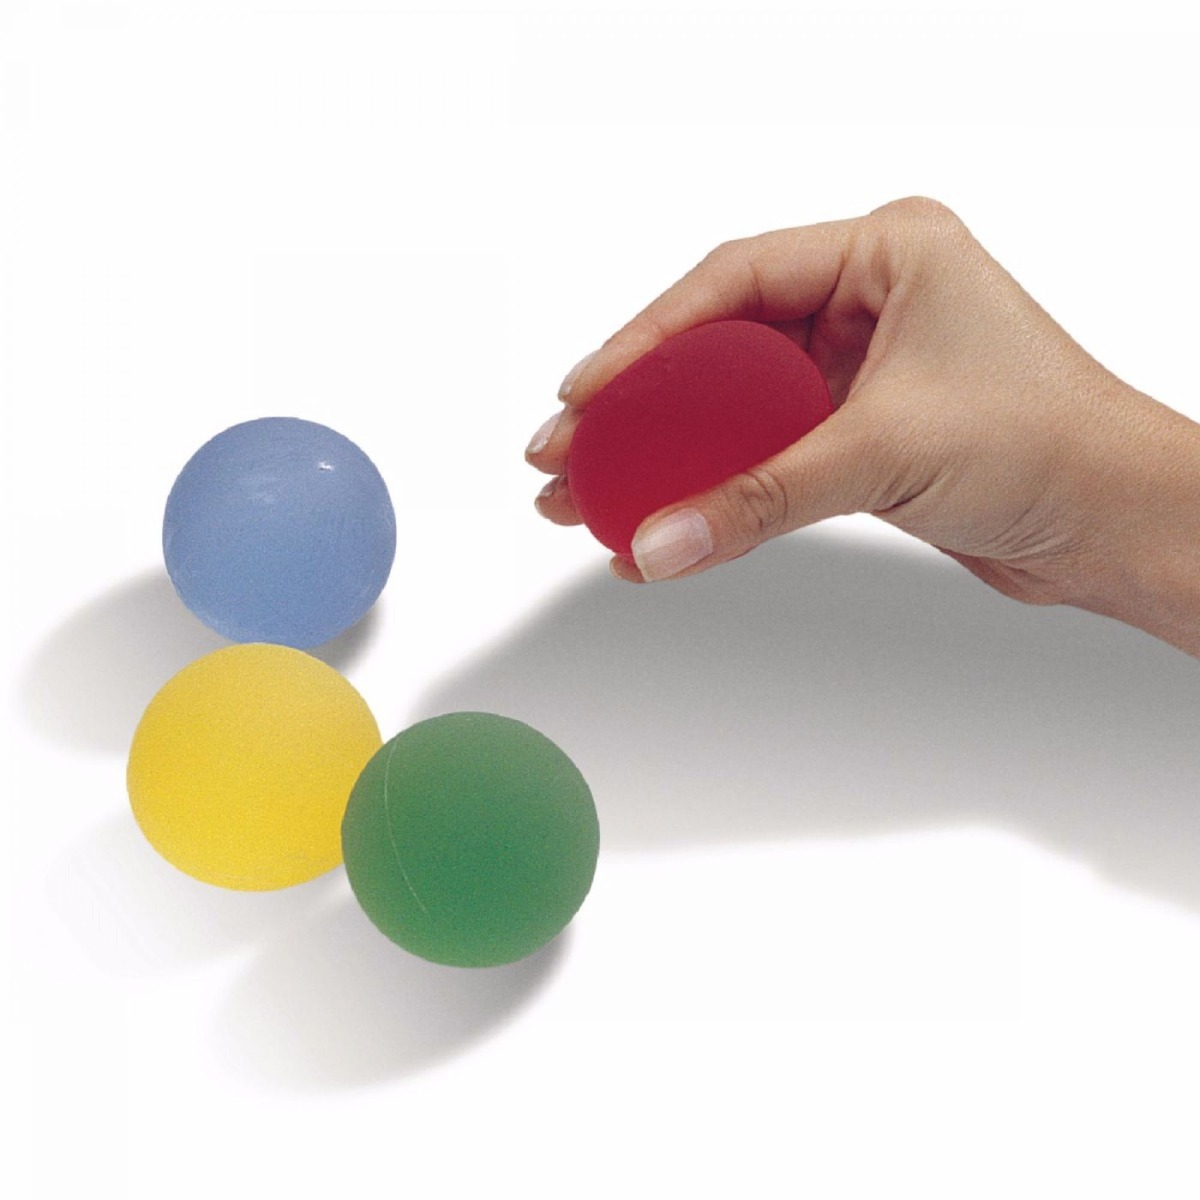 TheraBand Hand Exercisers